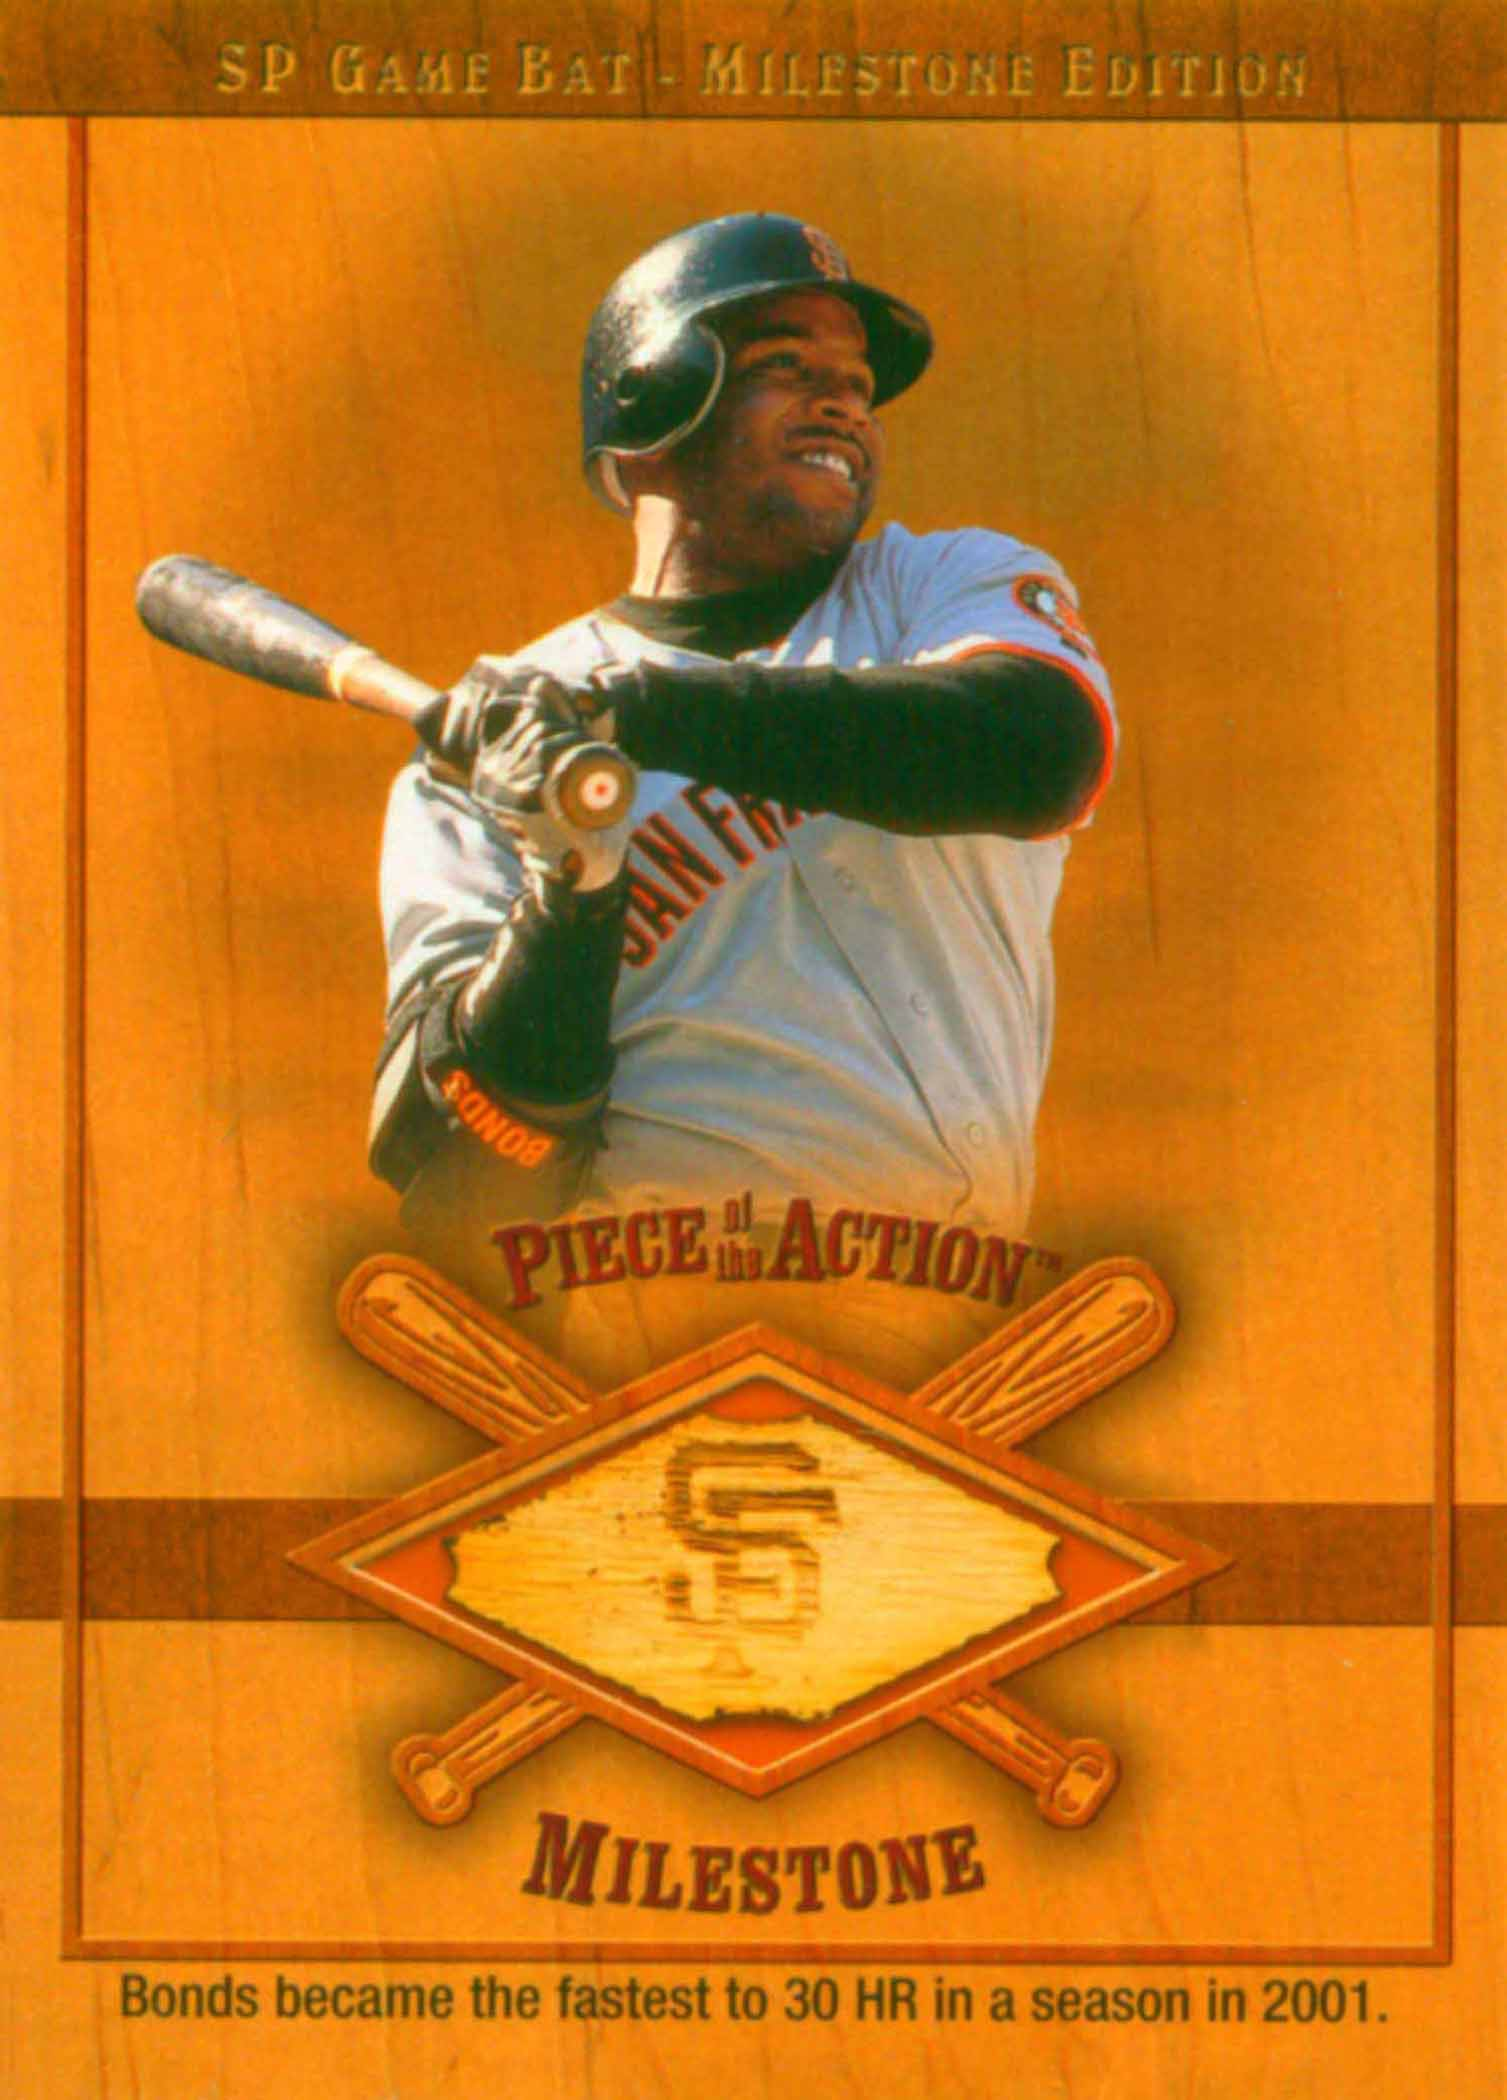 2001 SP Game Bat Milestone Piece of Action Milestone